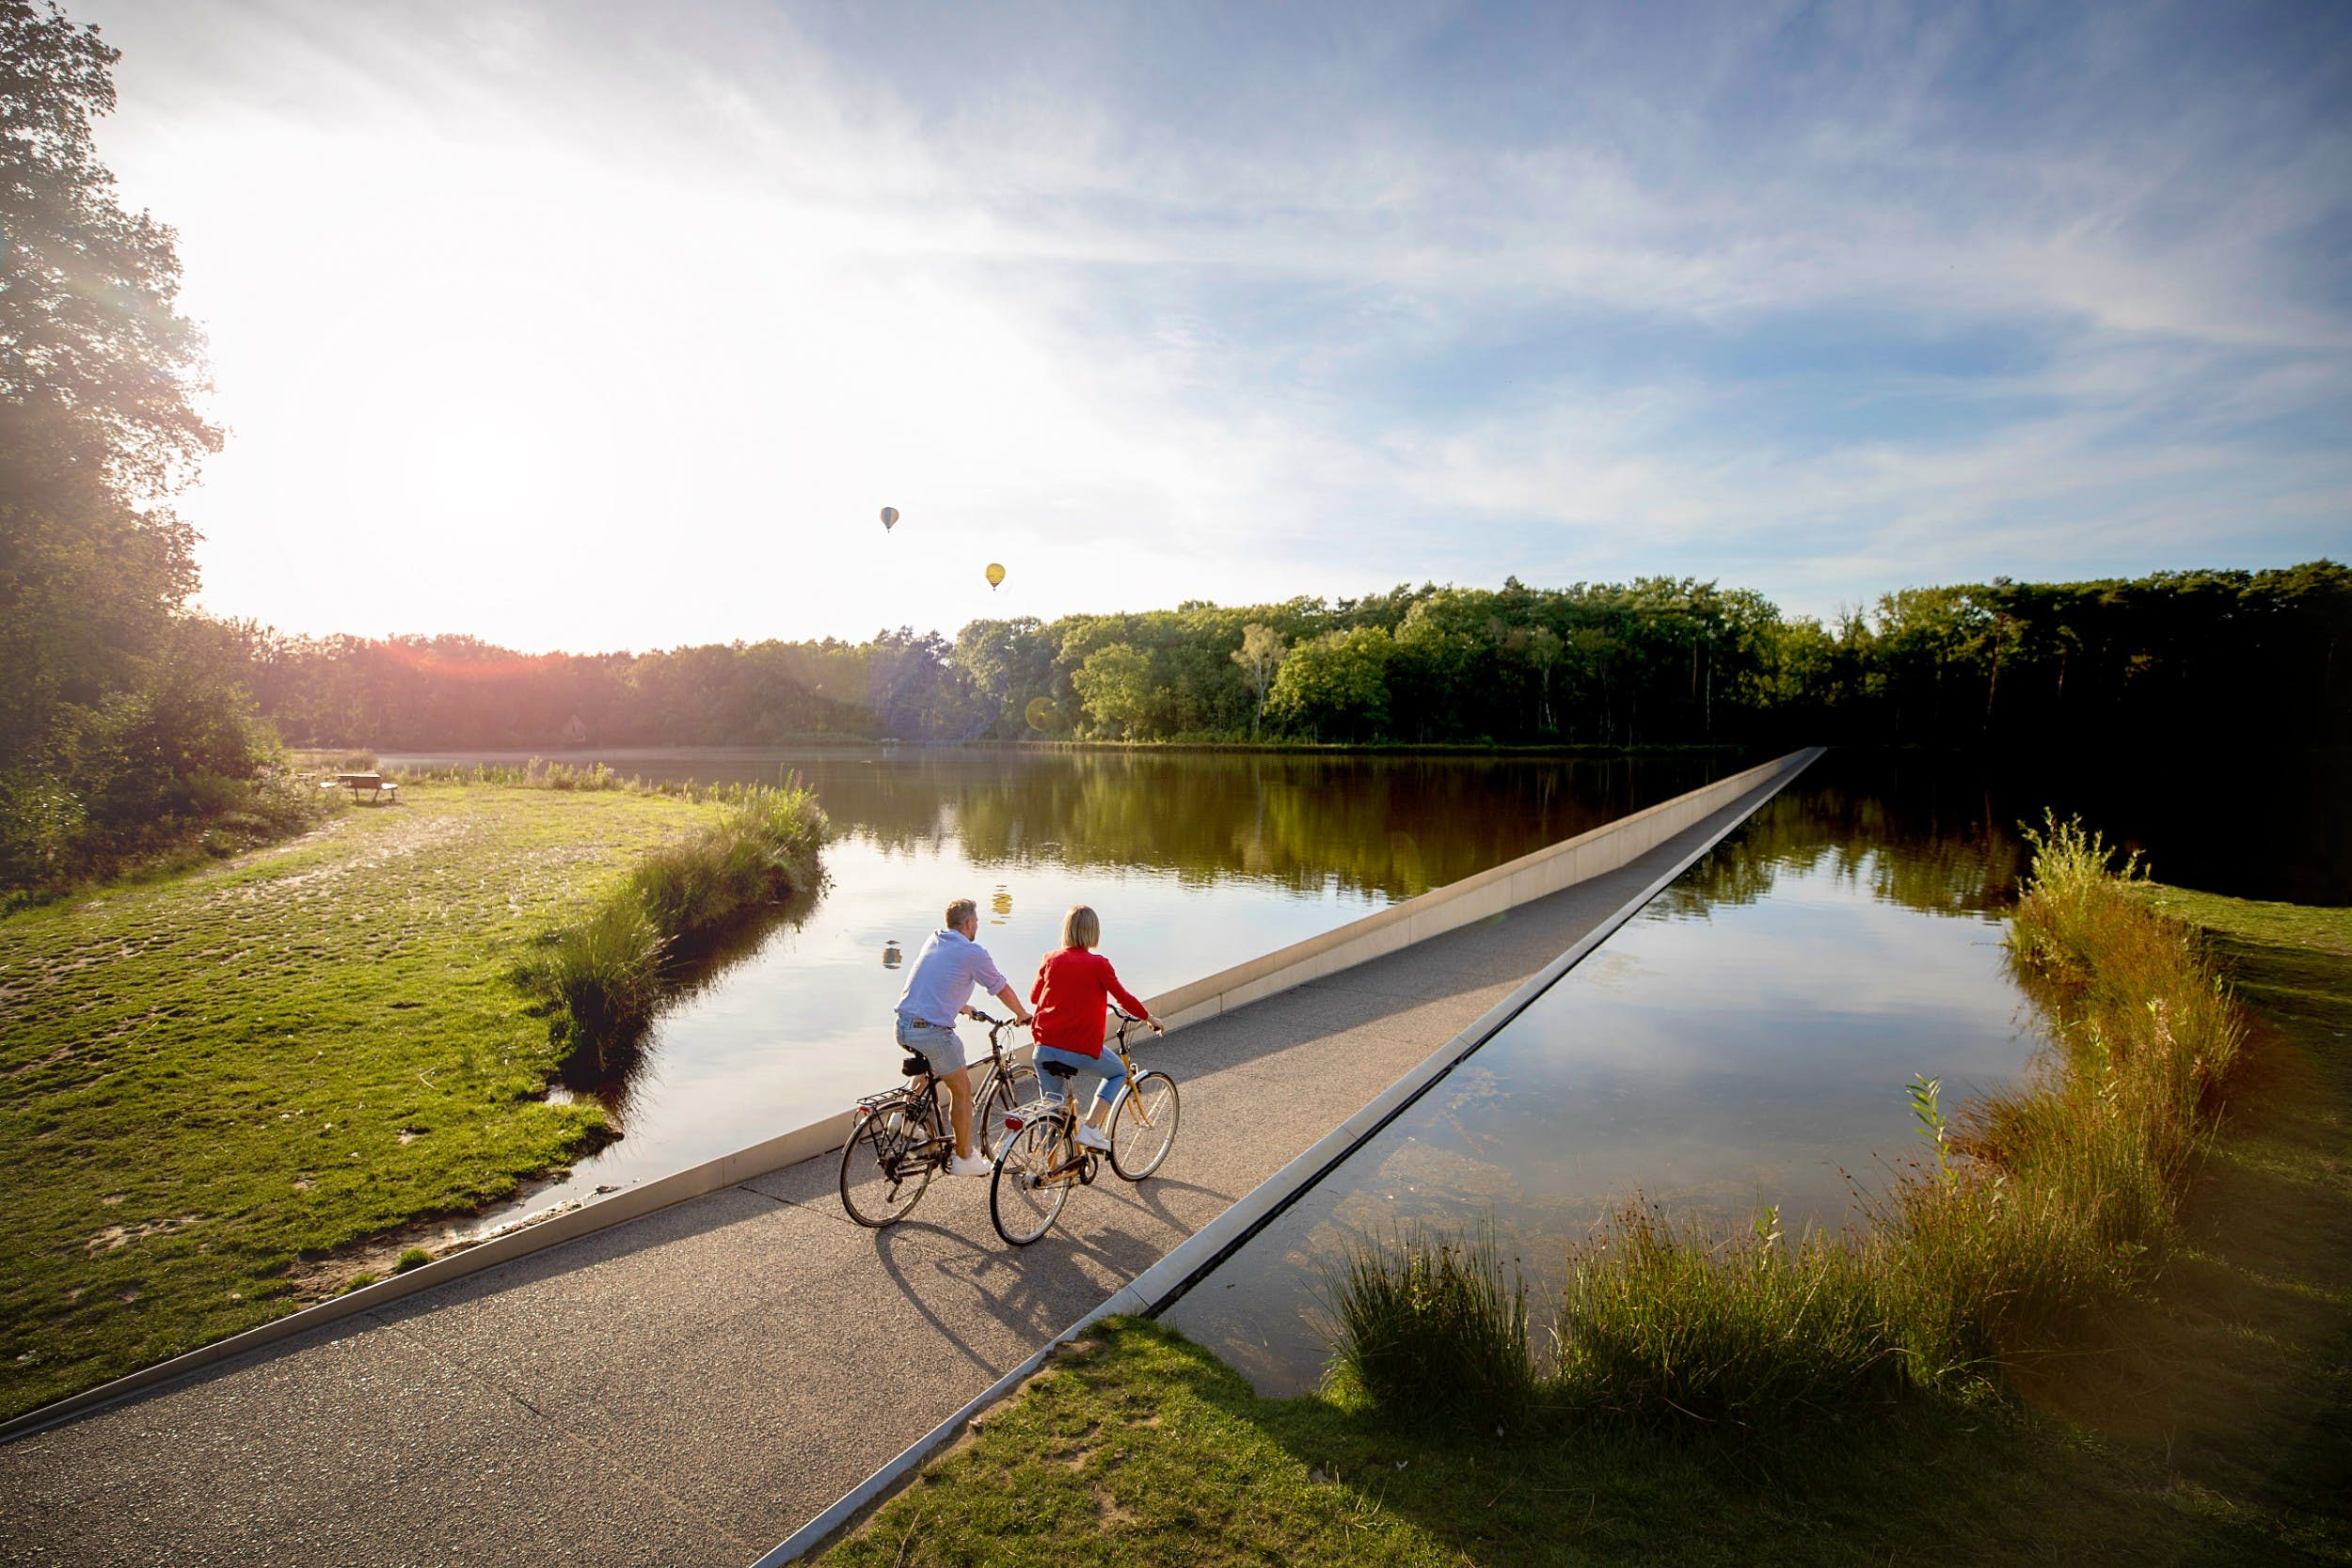 Two people cycling on a path through a pond